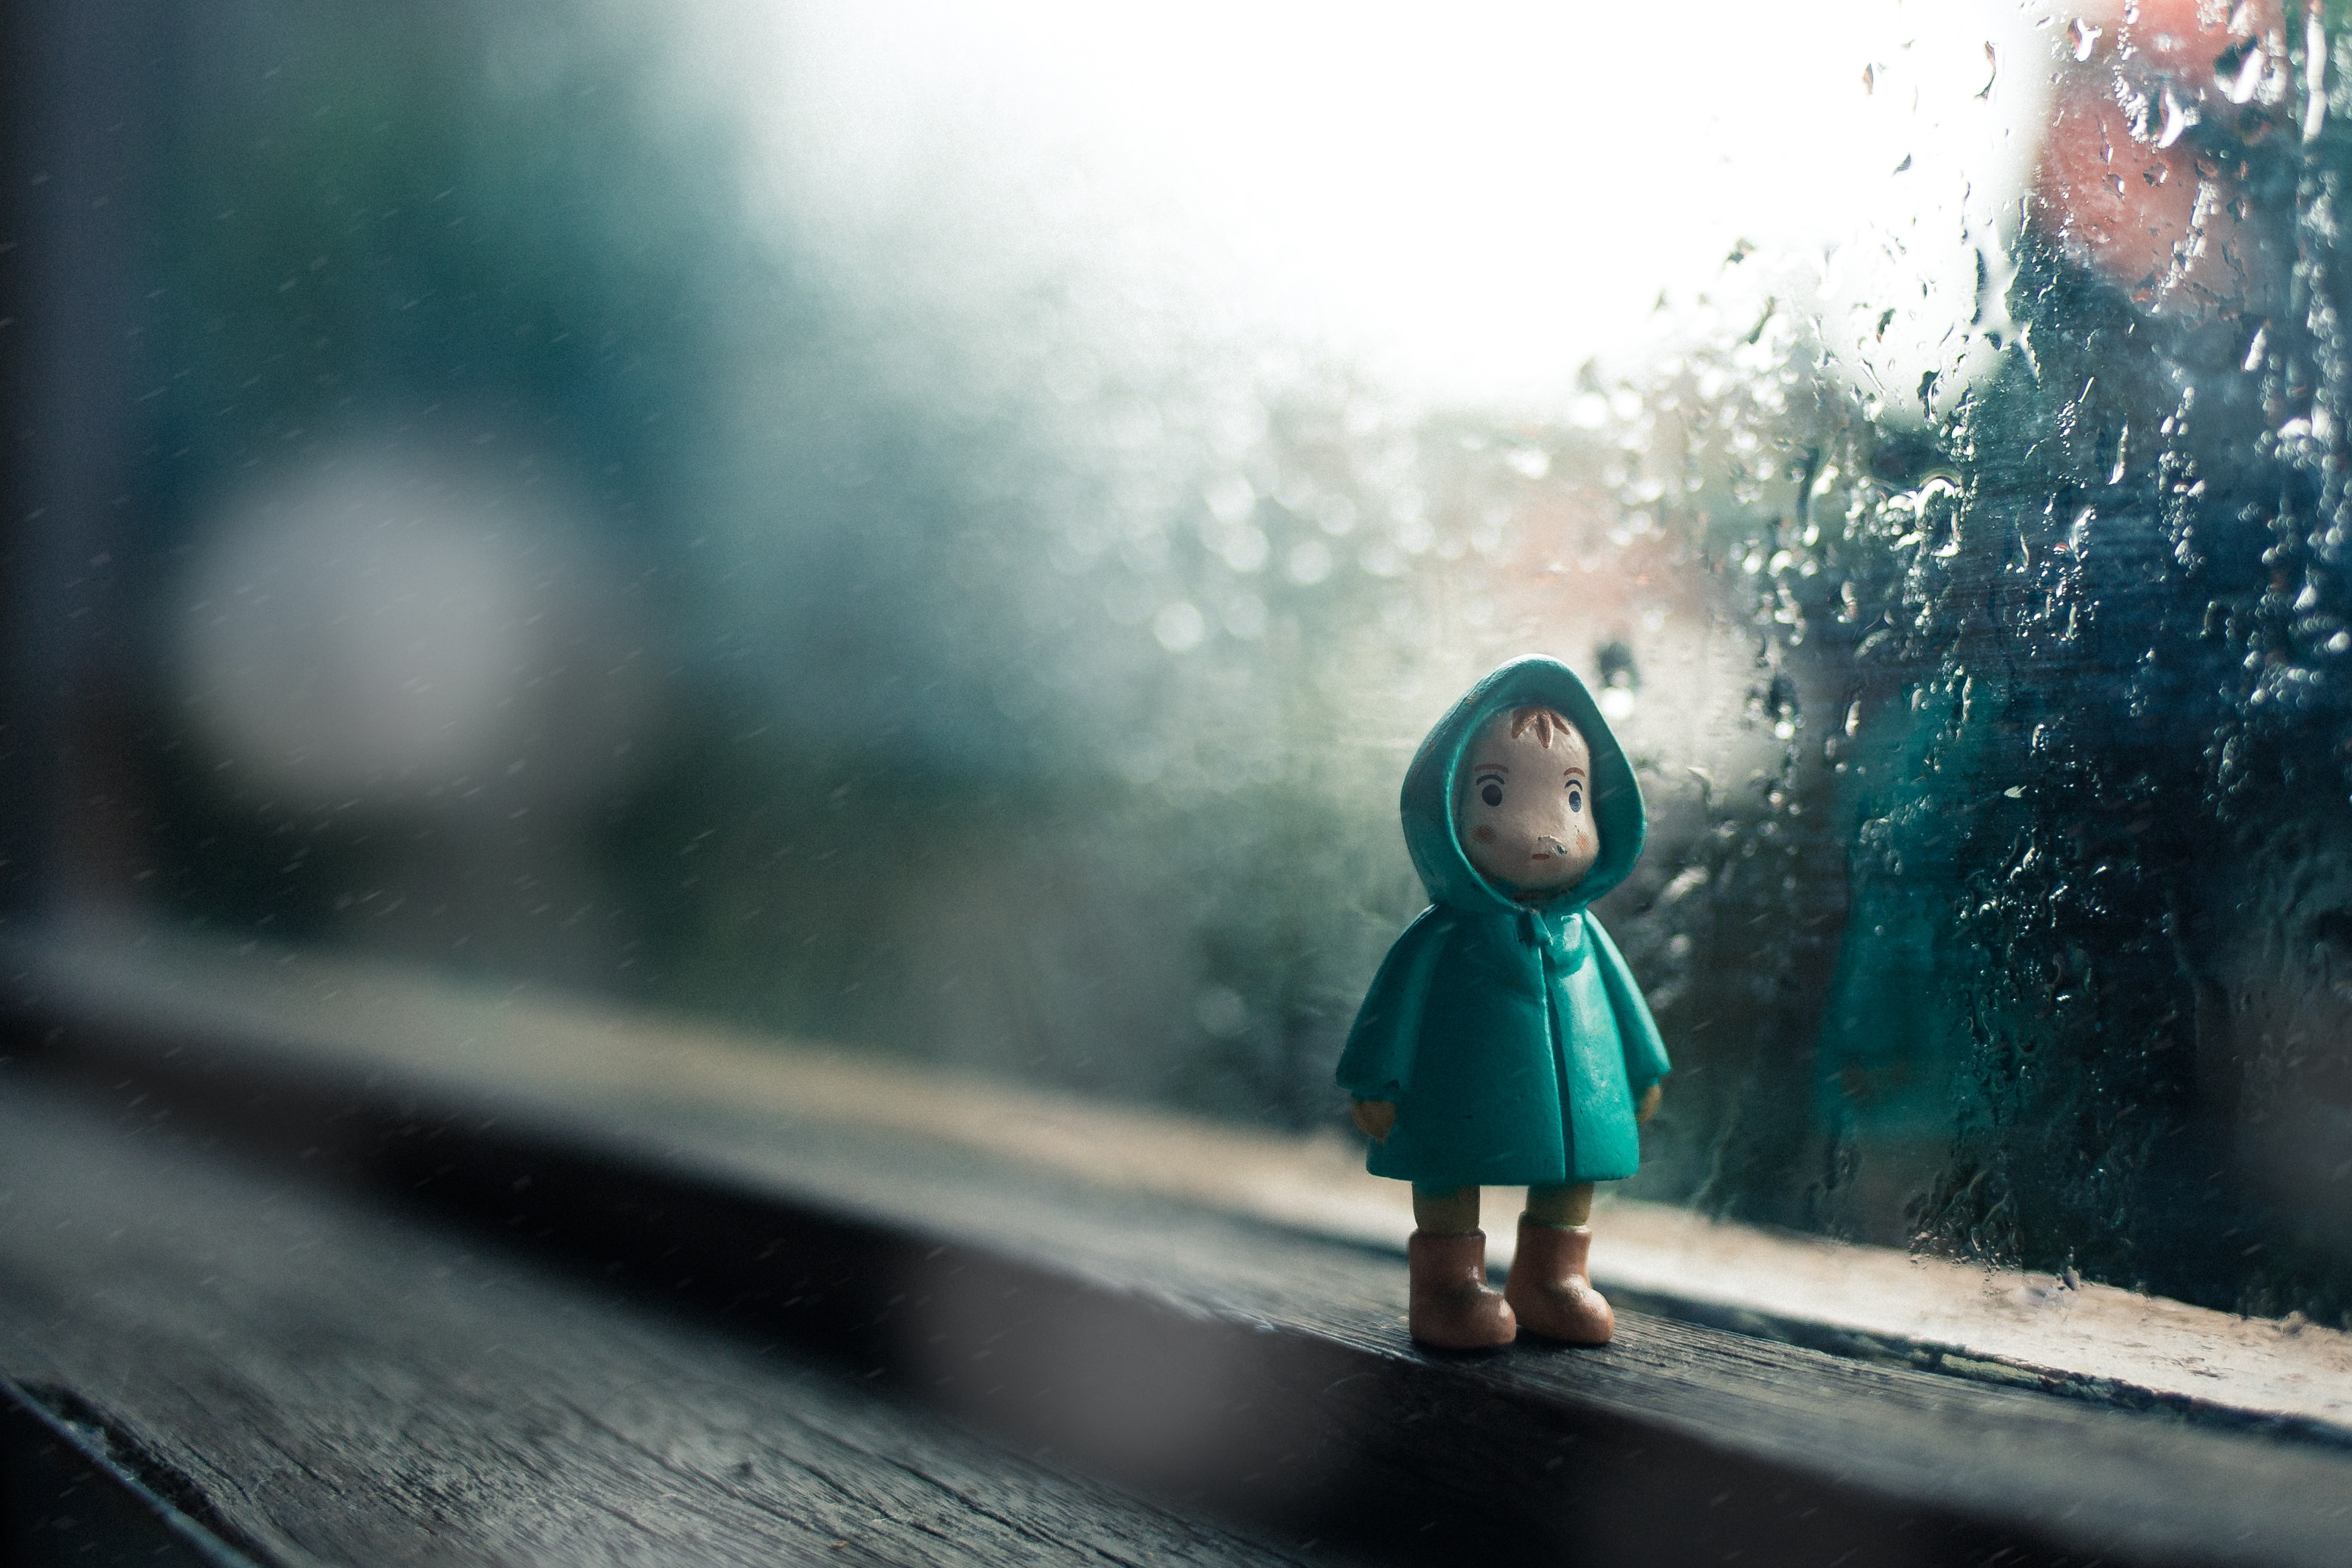 A little figure toy sitting in front of a window on a rainy day in Indonesia